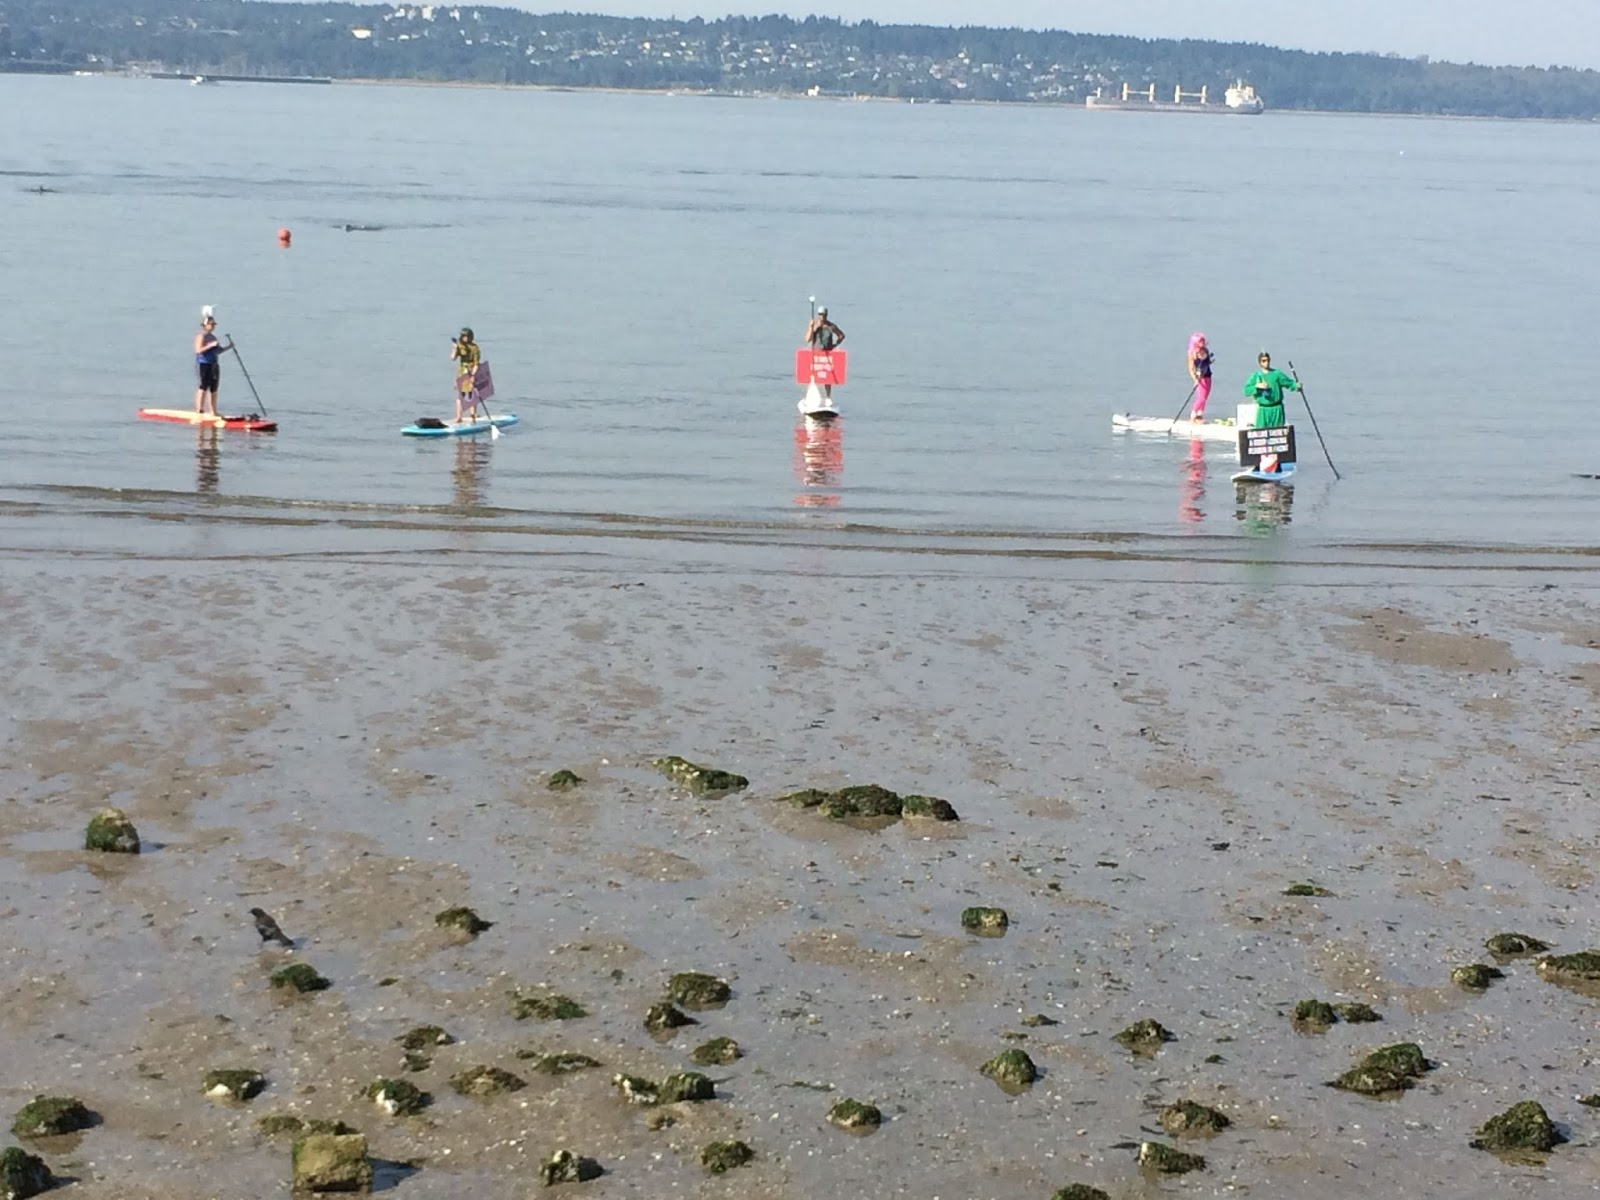 lululemon sea wheeze half marathon paddleboarders